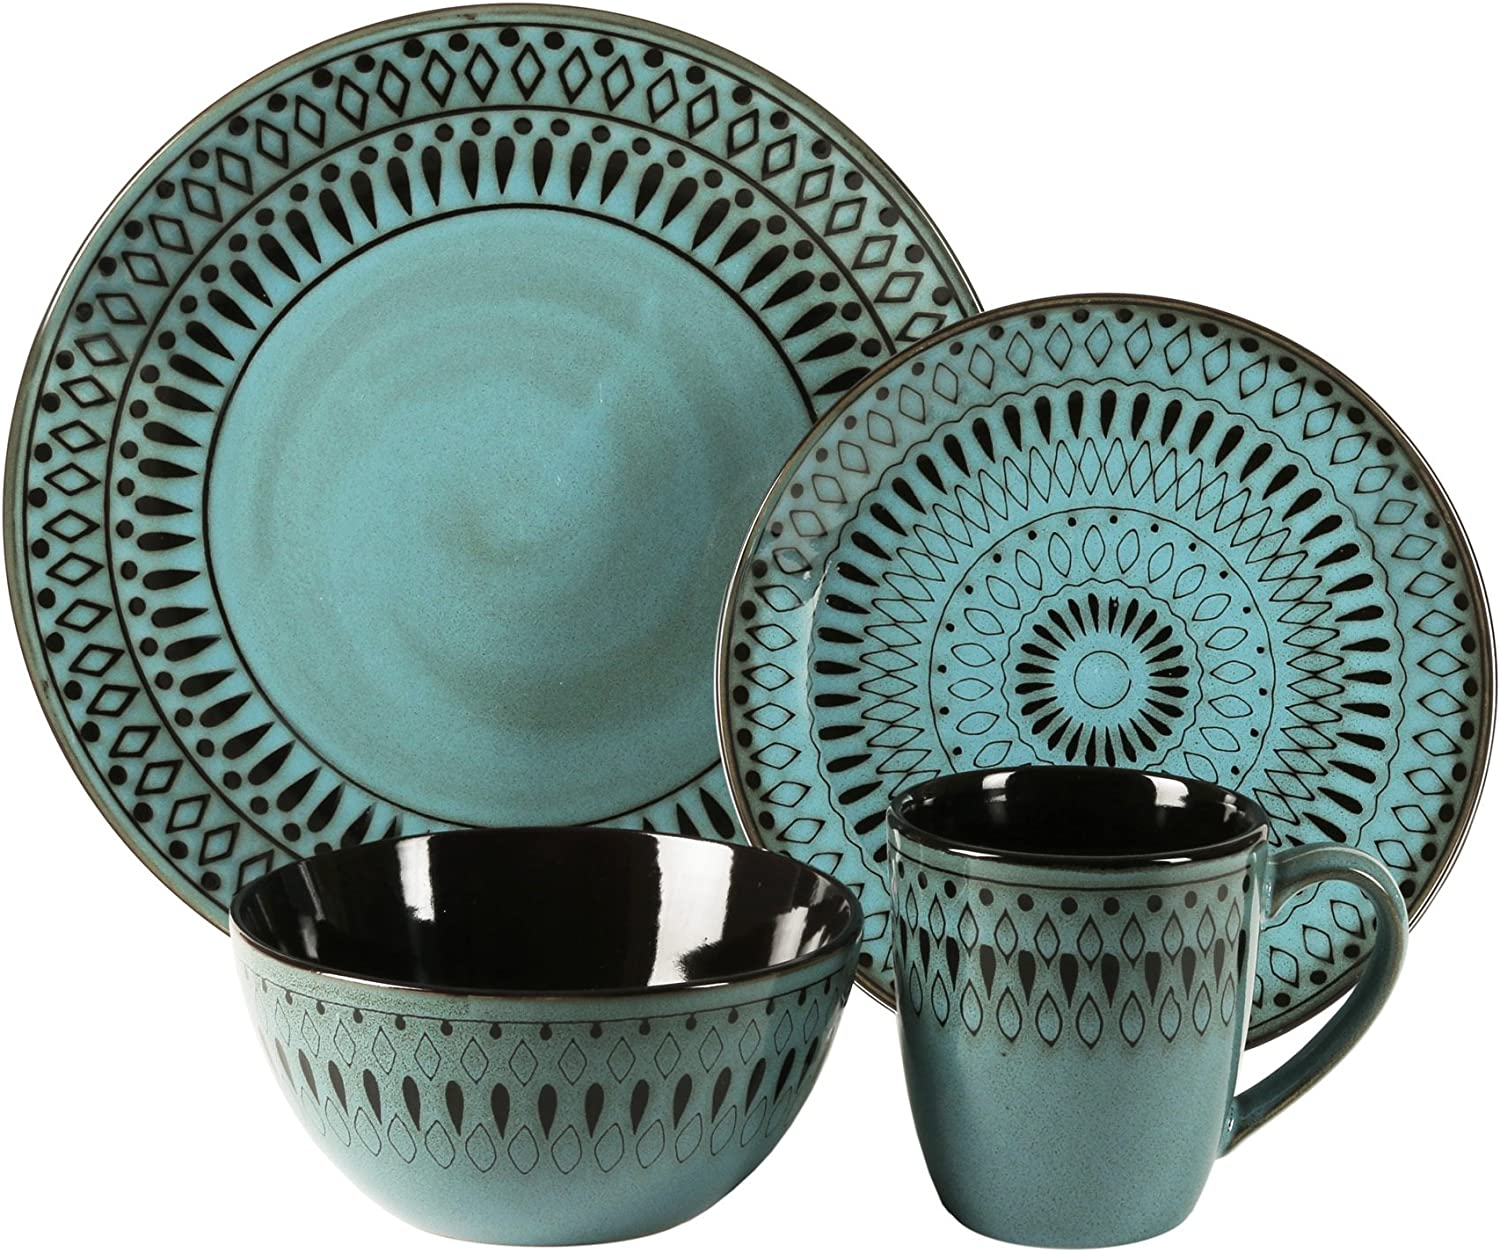 American Atelier Same day shipping Romy Blue Dinnerware 16-piece Earthenware Set Ranking TOP1